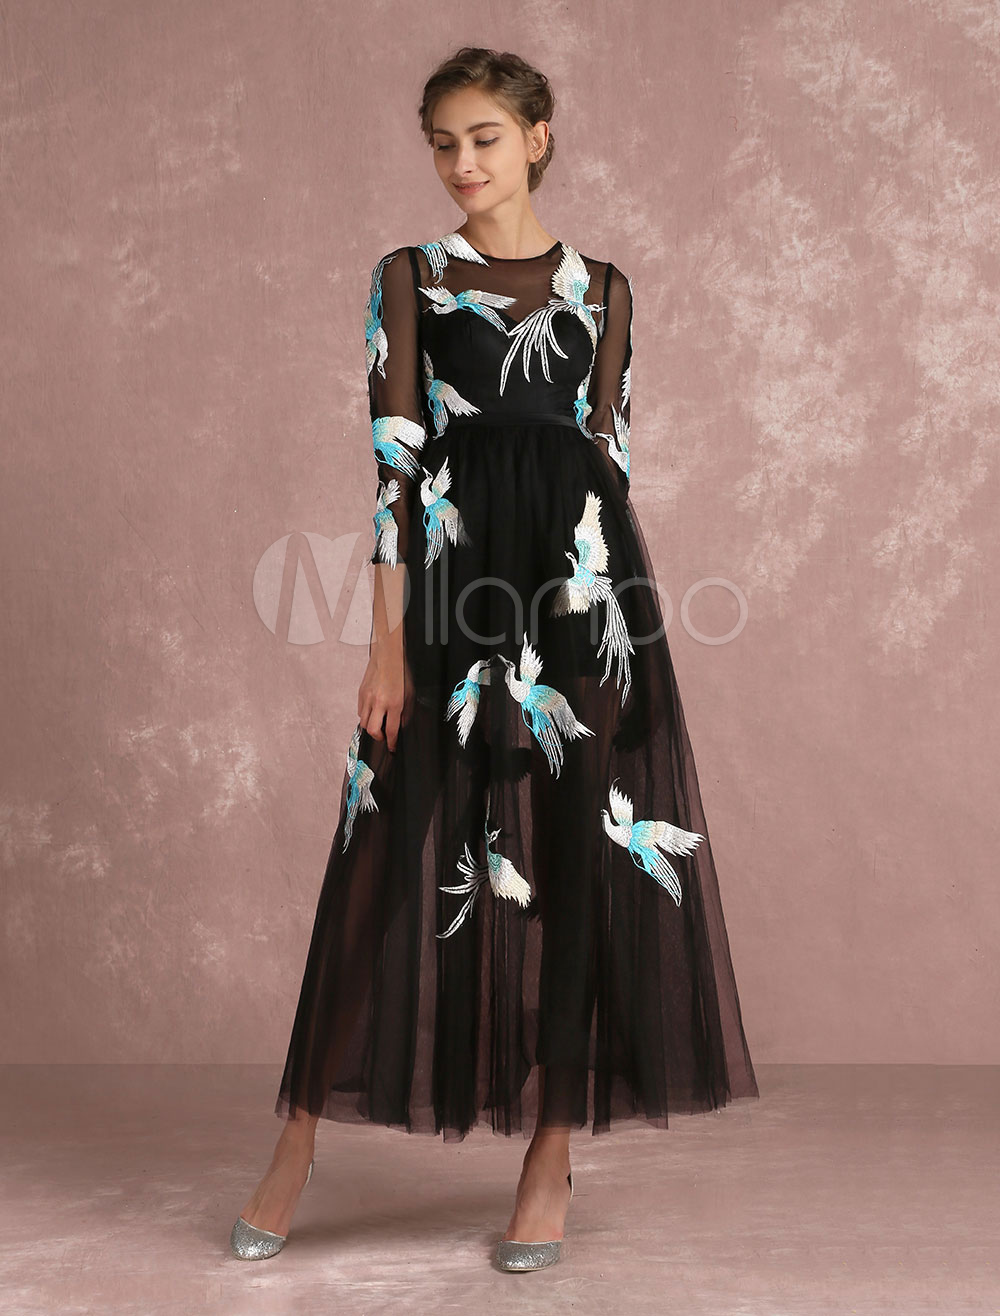 Black Prom Dresses 2018 Long Floral Print Cocktail Dress Tulle Illusion Embroidered Jewel 3/4 Length Sleeve Ankle Length Party Dresses (Wedding) photo